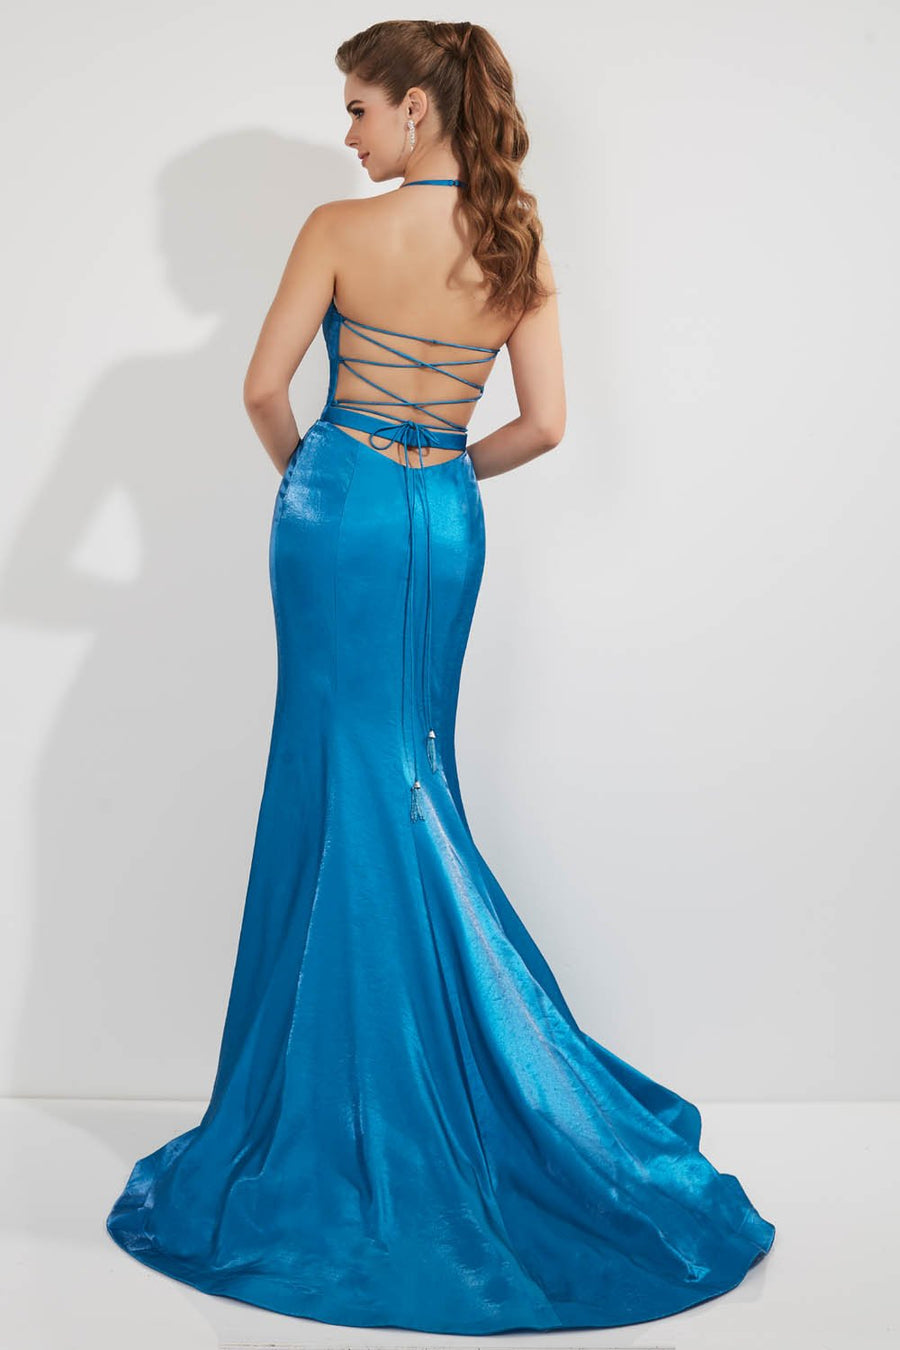 Studio 17 12746 prom dress images.  Studio 17 12746 is available in these colors: Canary, Ocean, Purple, Red.